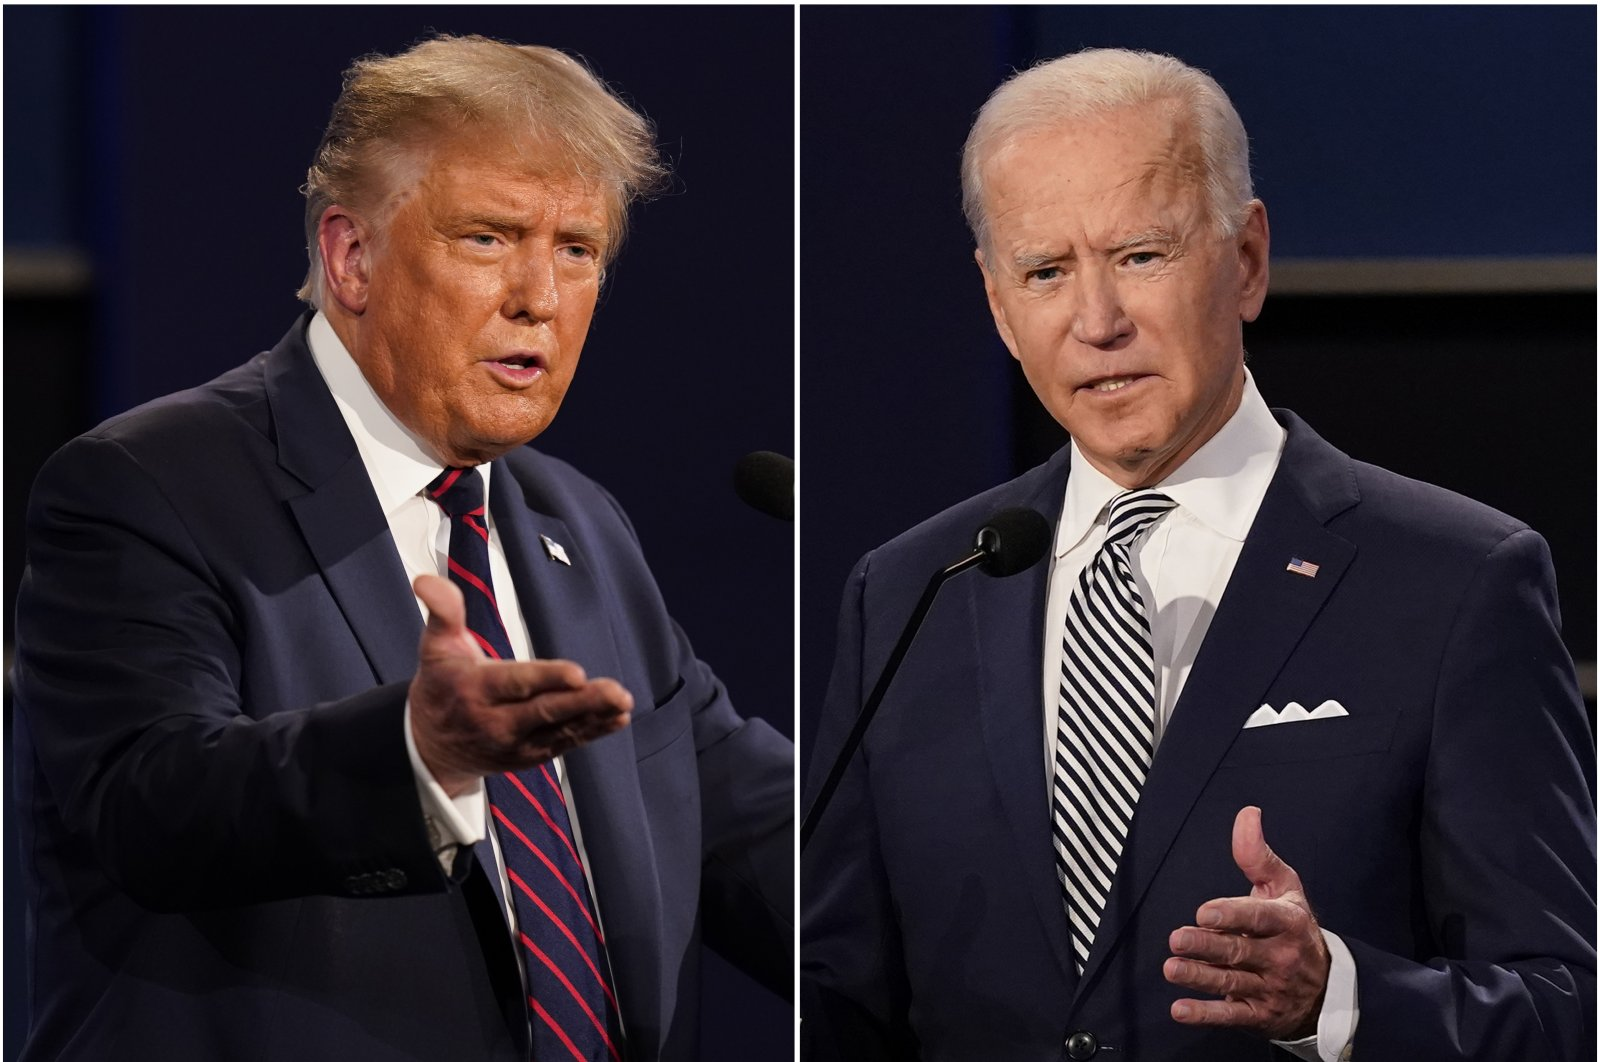 This combination of file photos shows President Donald Trump (L) and former Vice President Joe Biden during the first presidential debate at Case Western University and Cleveland Clinic, in Cleveland, Ohio on Sept. 29, 2020. (AP Photo)